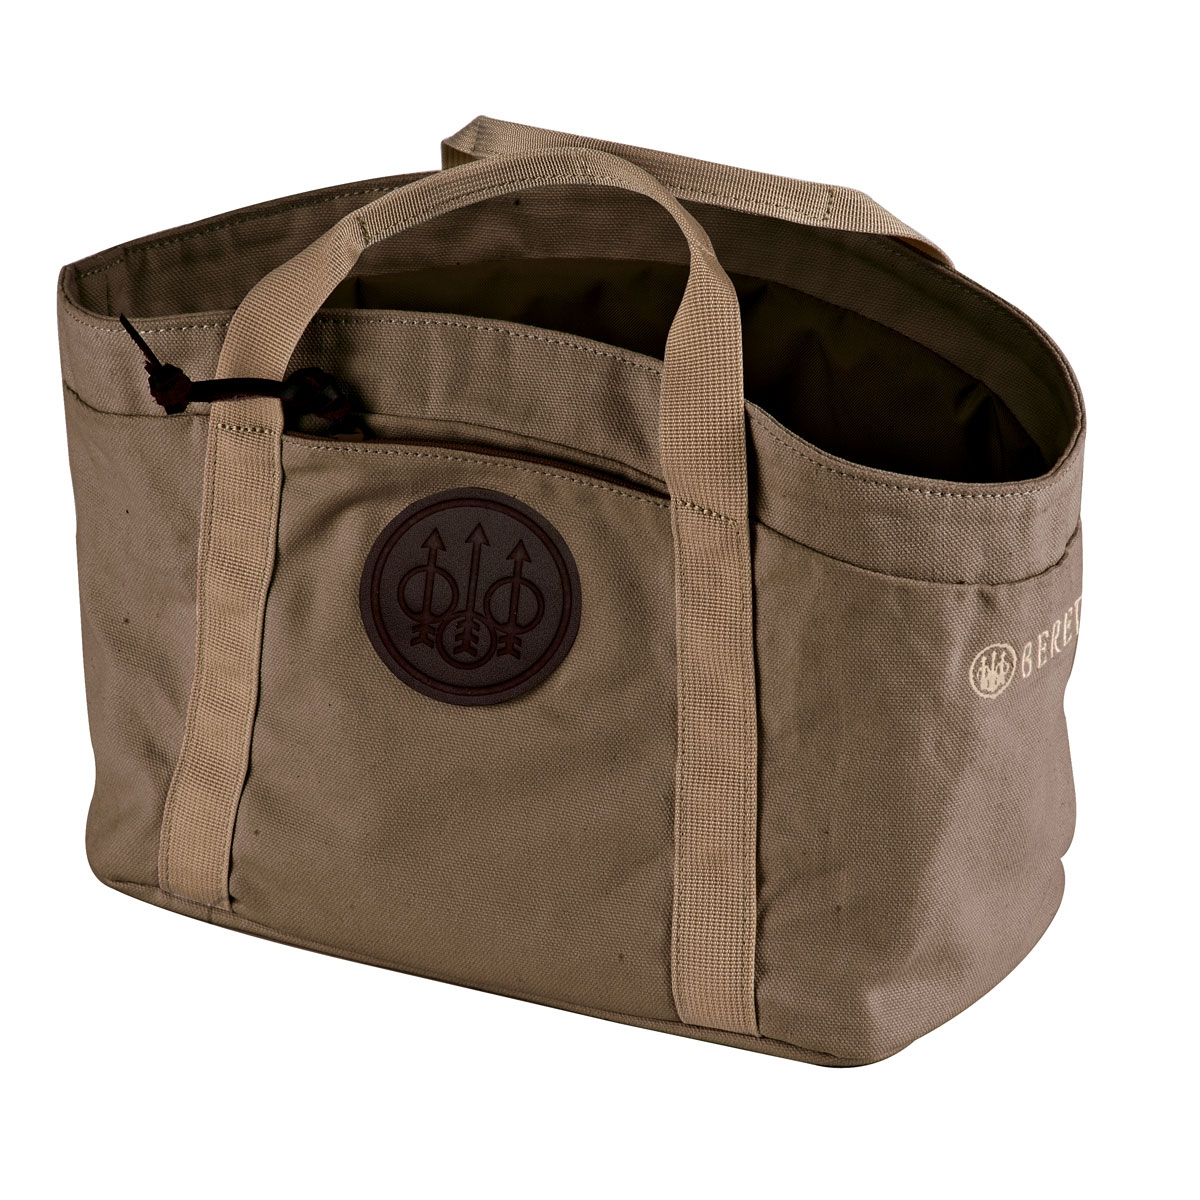 Image of Beretta Waxwear Small Cartridge Bag - 100